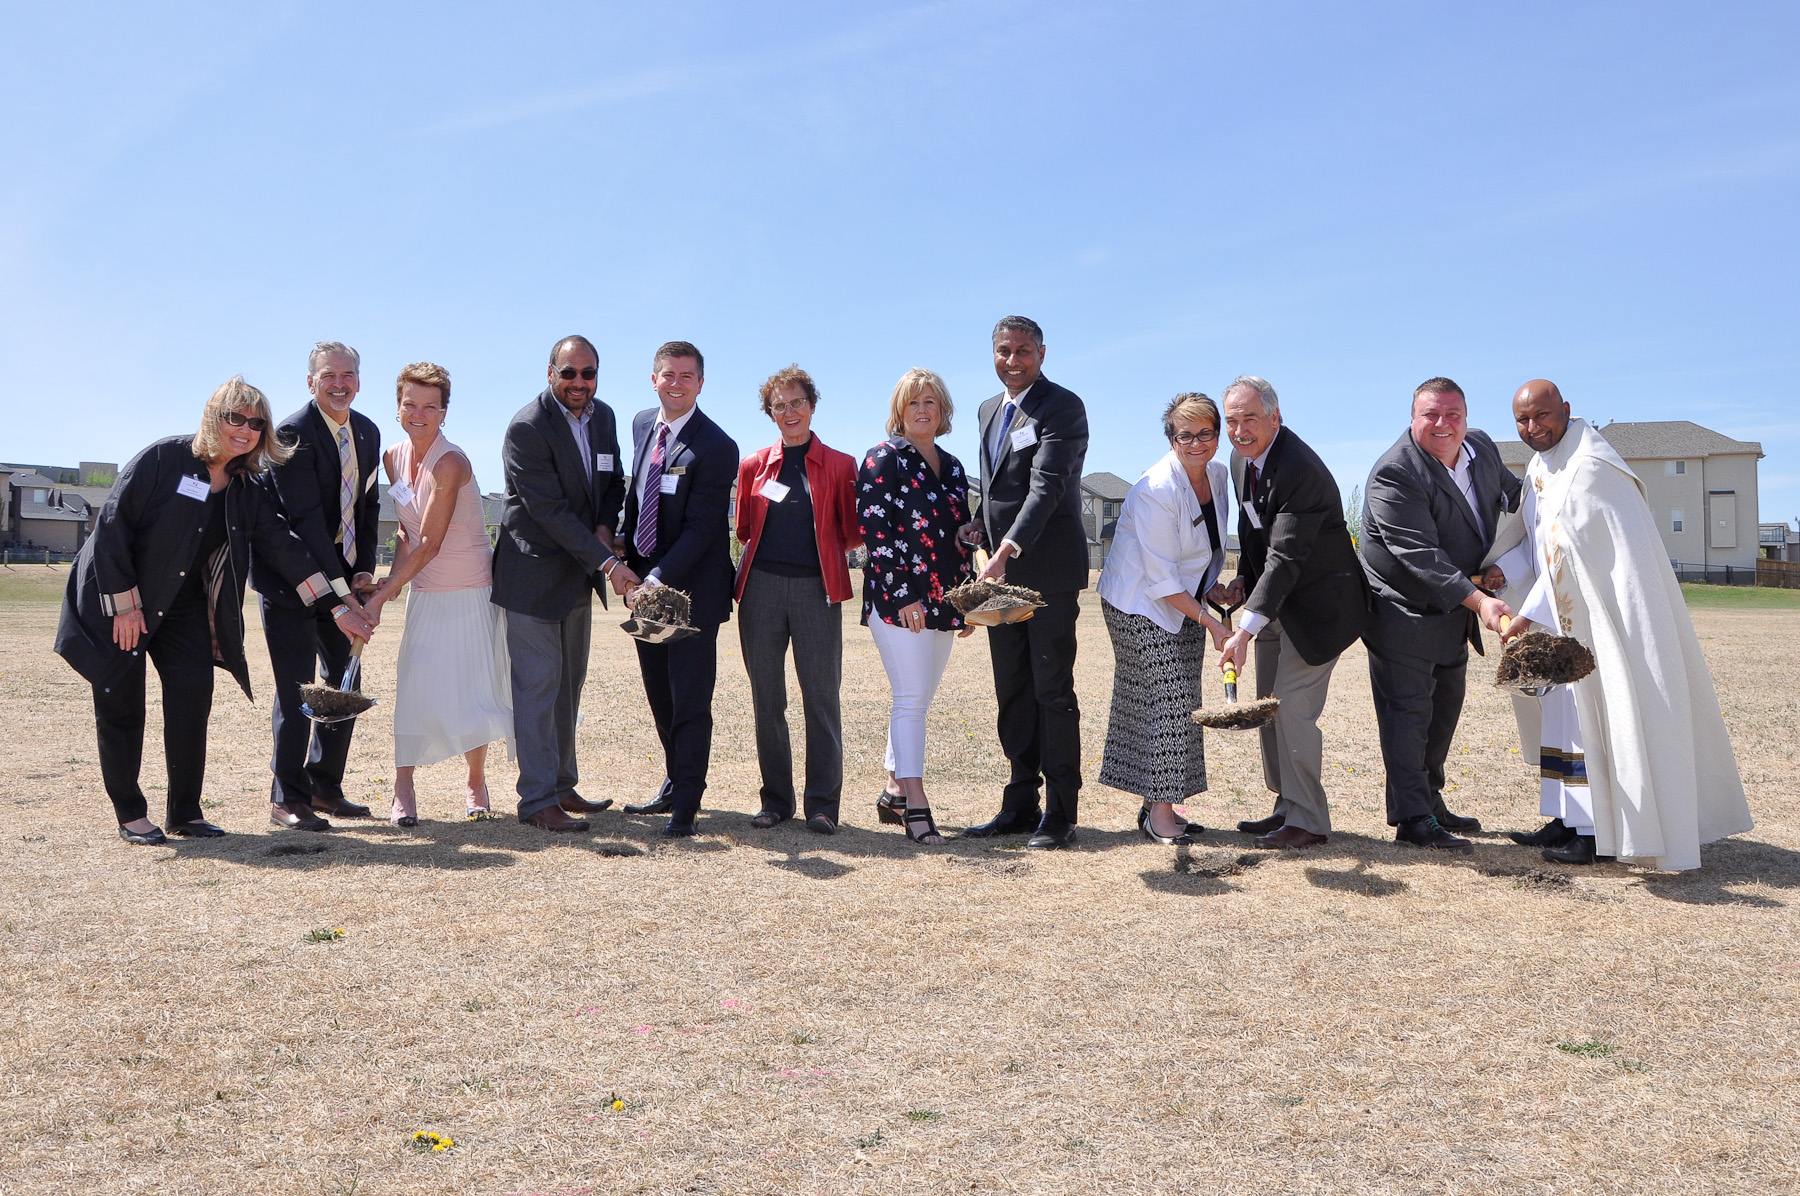 https://d3n8a8pro7vhmx.cloudfront.net/prasadpanda/pages/13/features/original/Sod_Turning_at_the_new_Catholic_School_in_Sherwood.jpg?1525821843